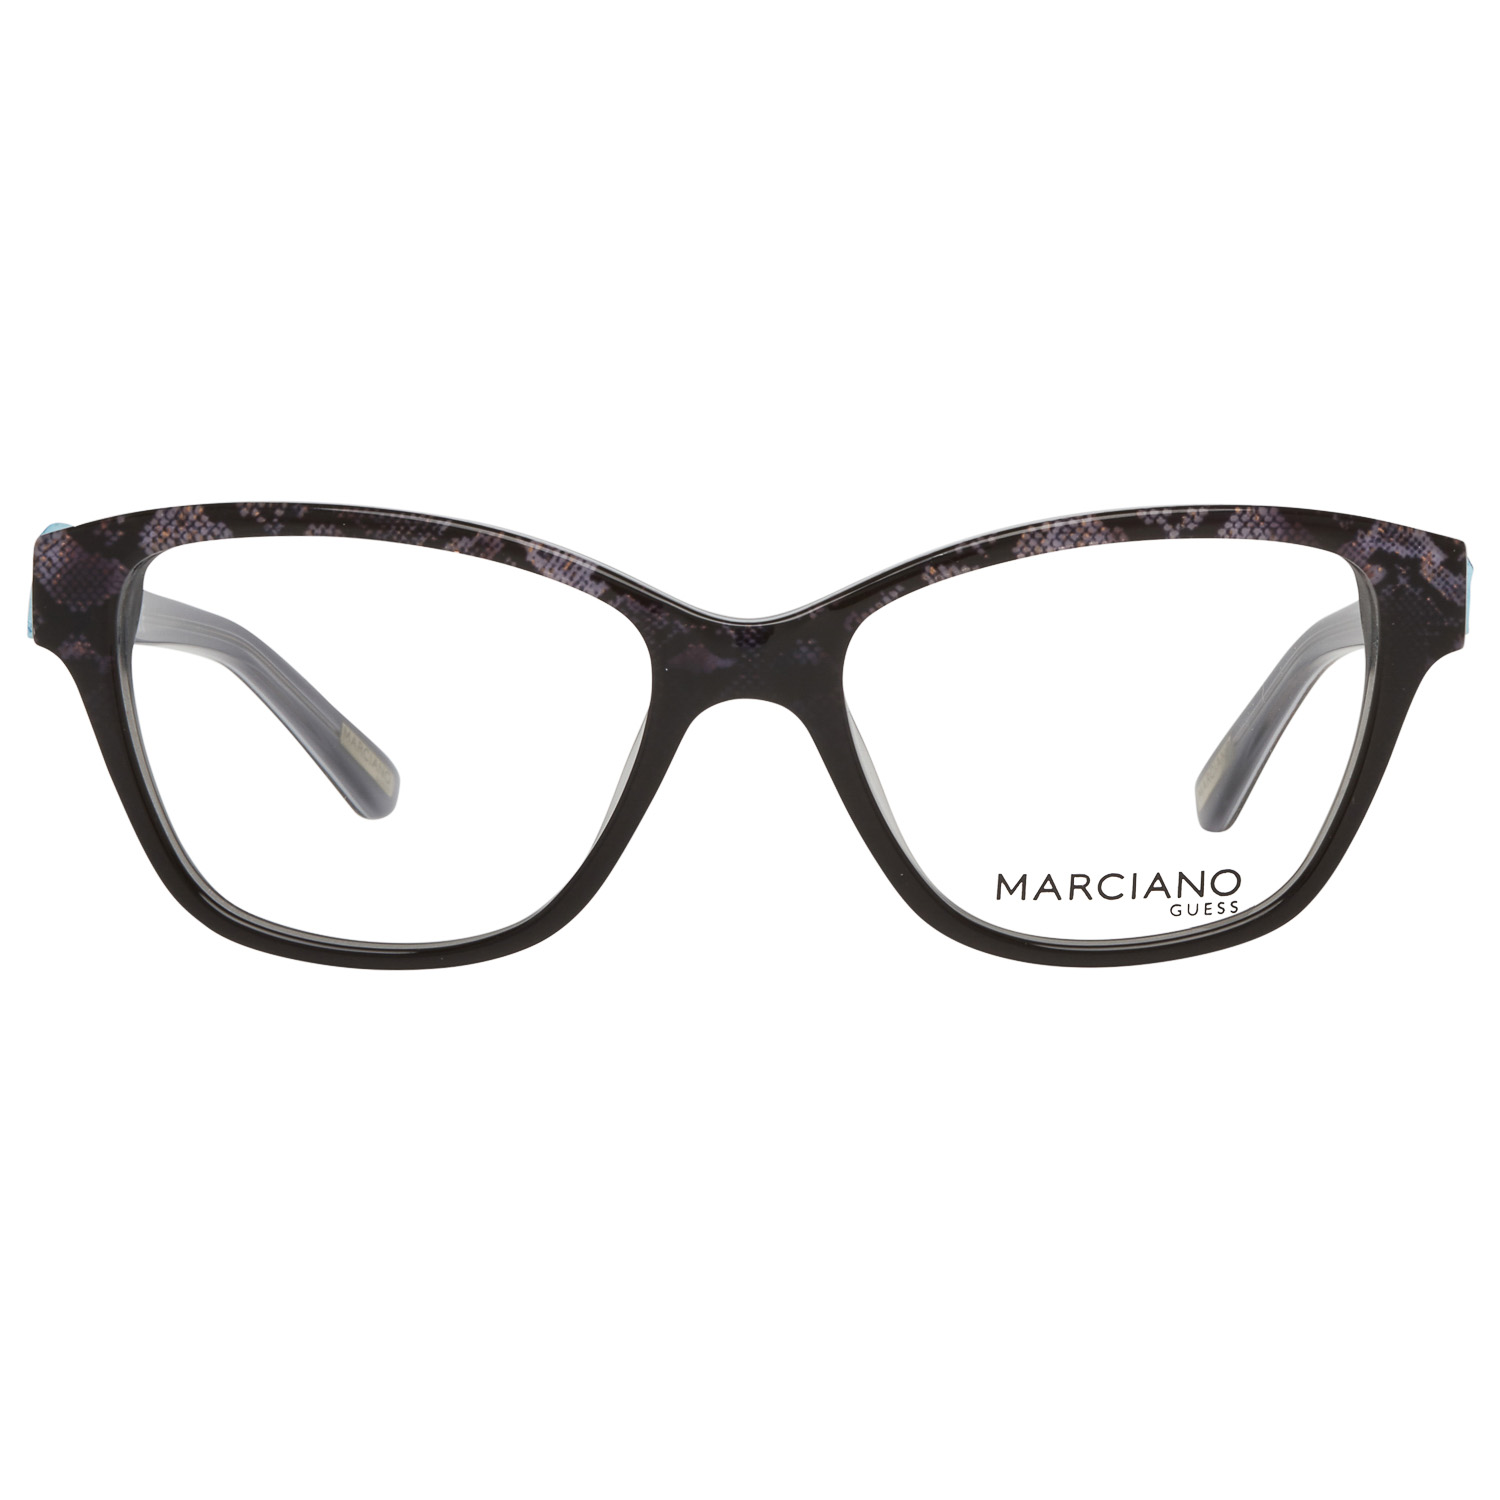 Guess by Marciano Optical Frame GM0280 005 51 Black